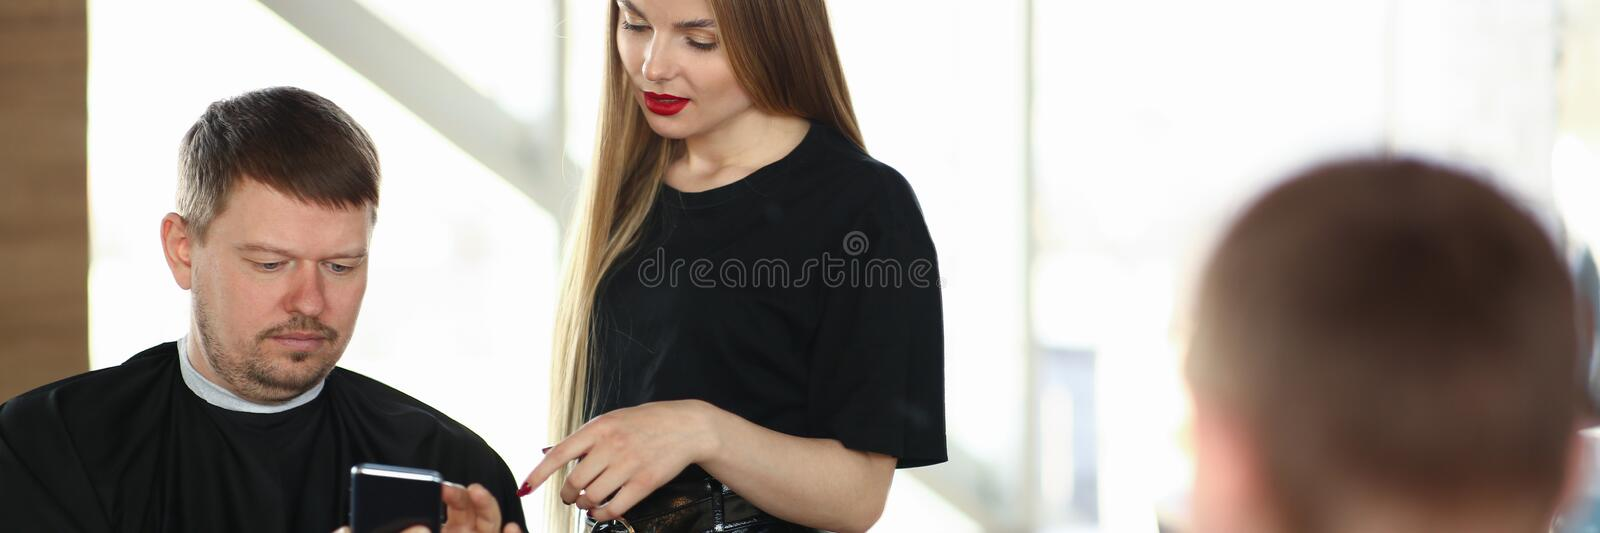 Man Client Showing on Phone to Woman Hairdresser stock photos